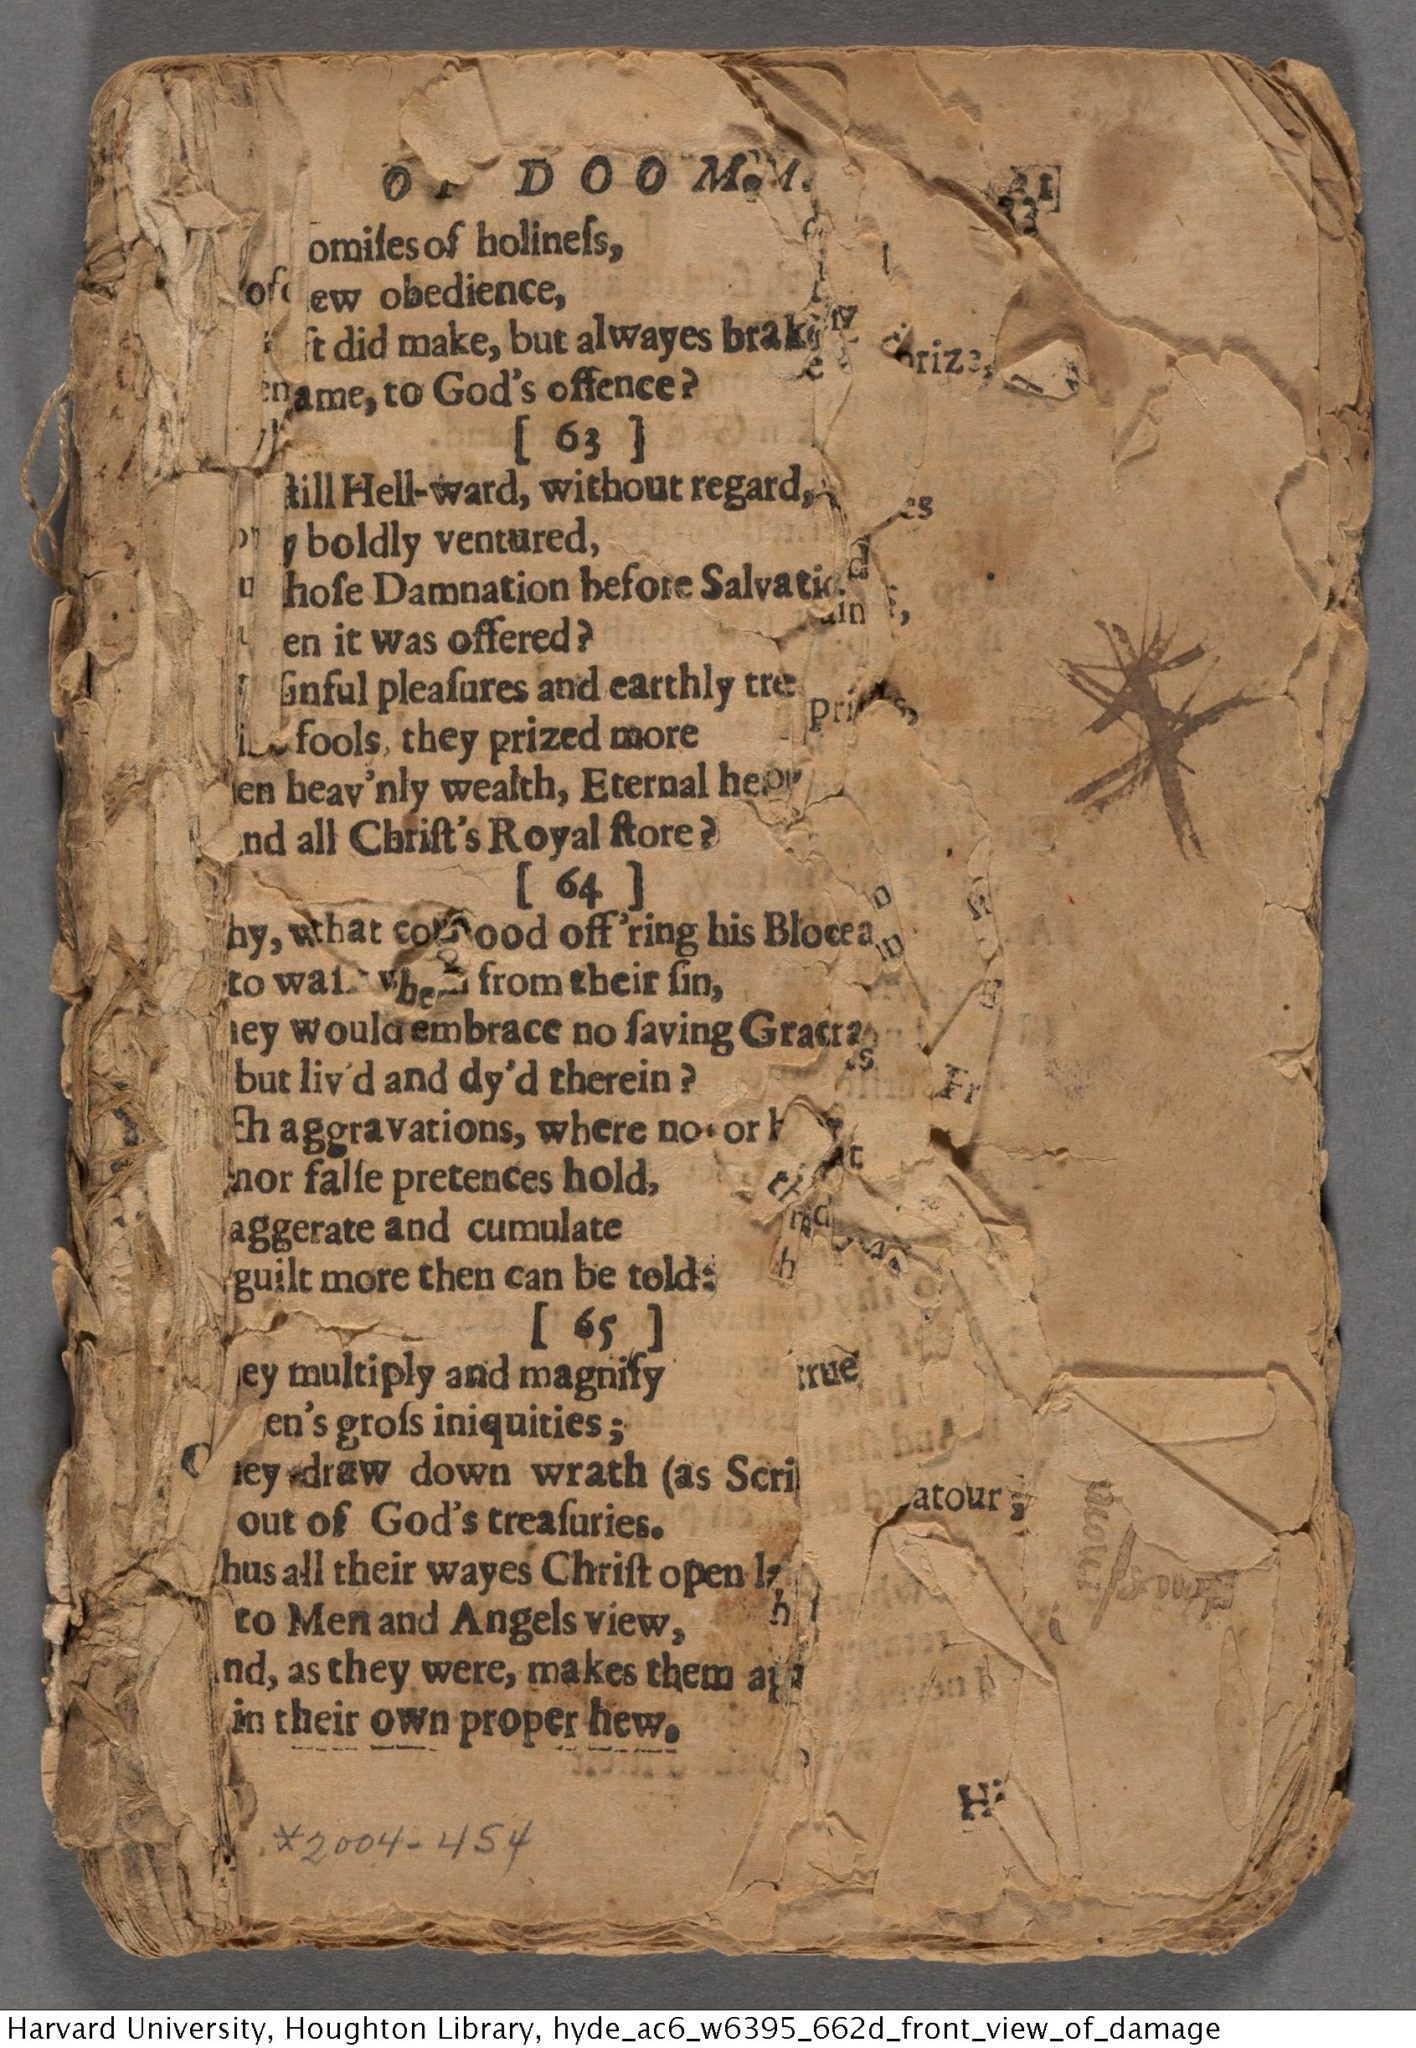 A fragmentary copy of the first edition of The Day of Doom, held at Houghton Library, Harvard University